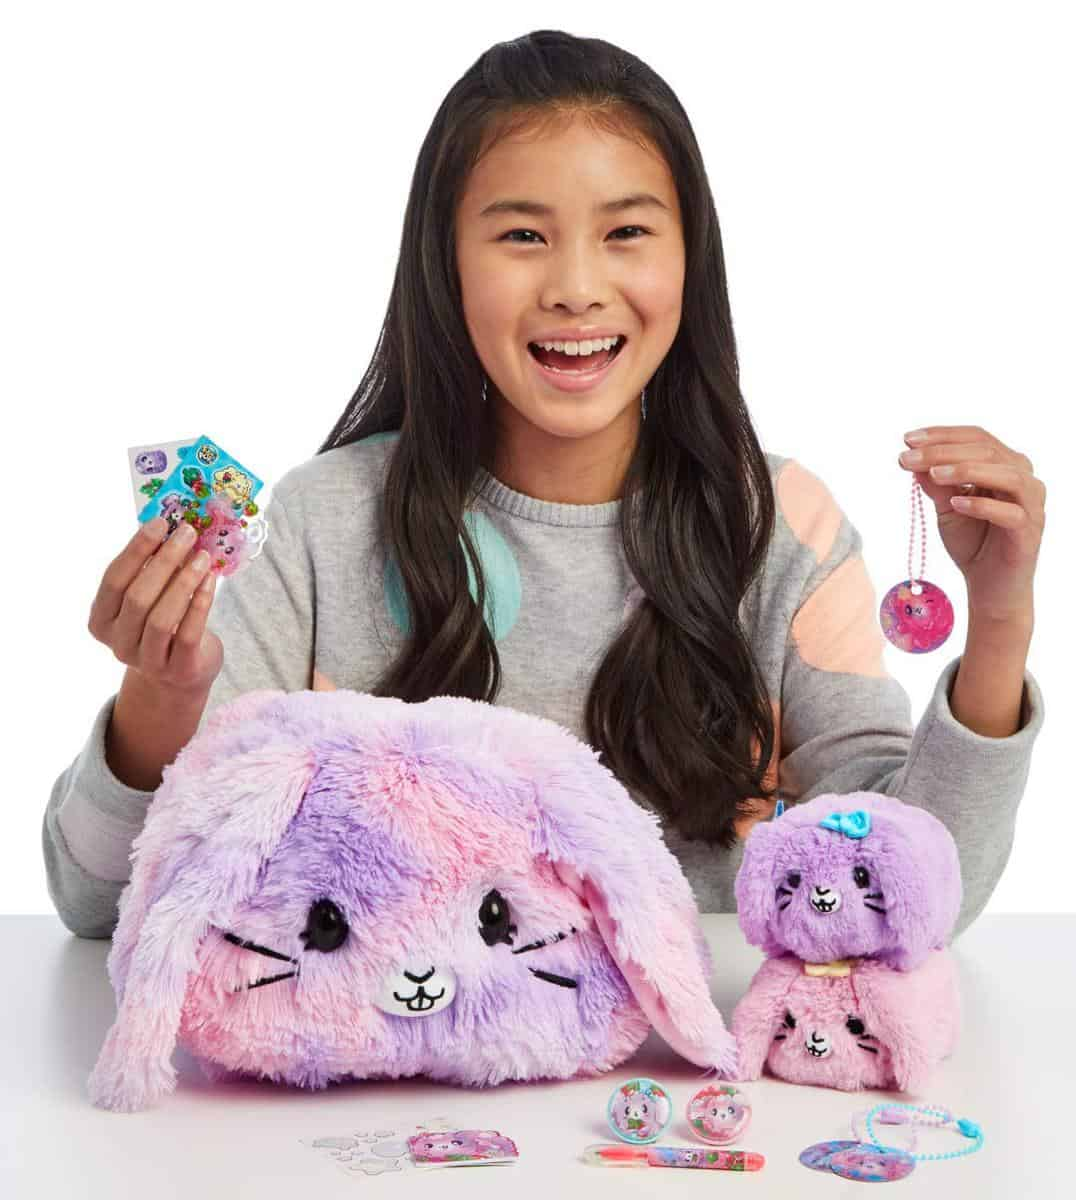 Pikmi Pops Giant Flips 2 Daily mom parents portal Gifts for Parents and Kids to Enjoy